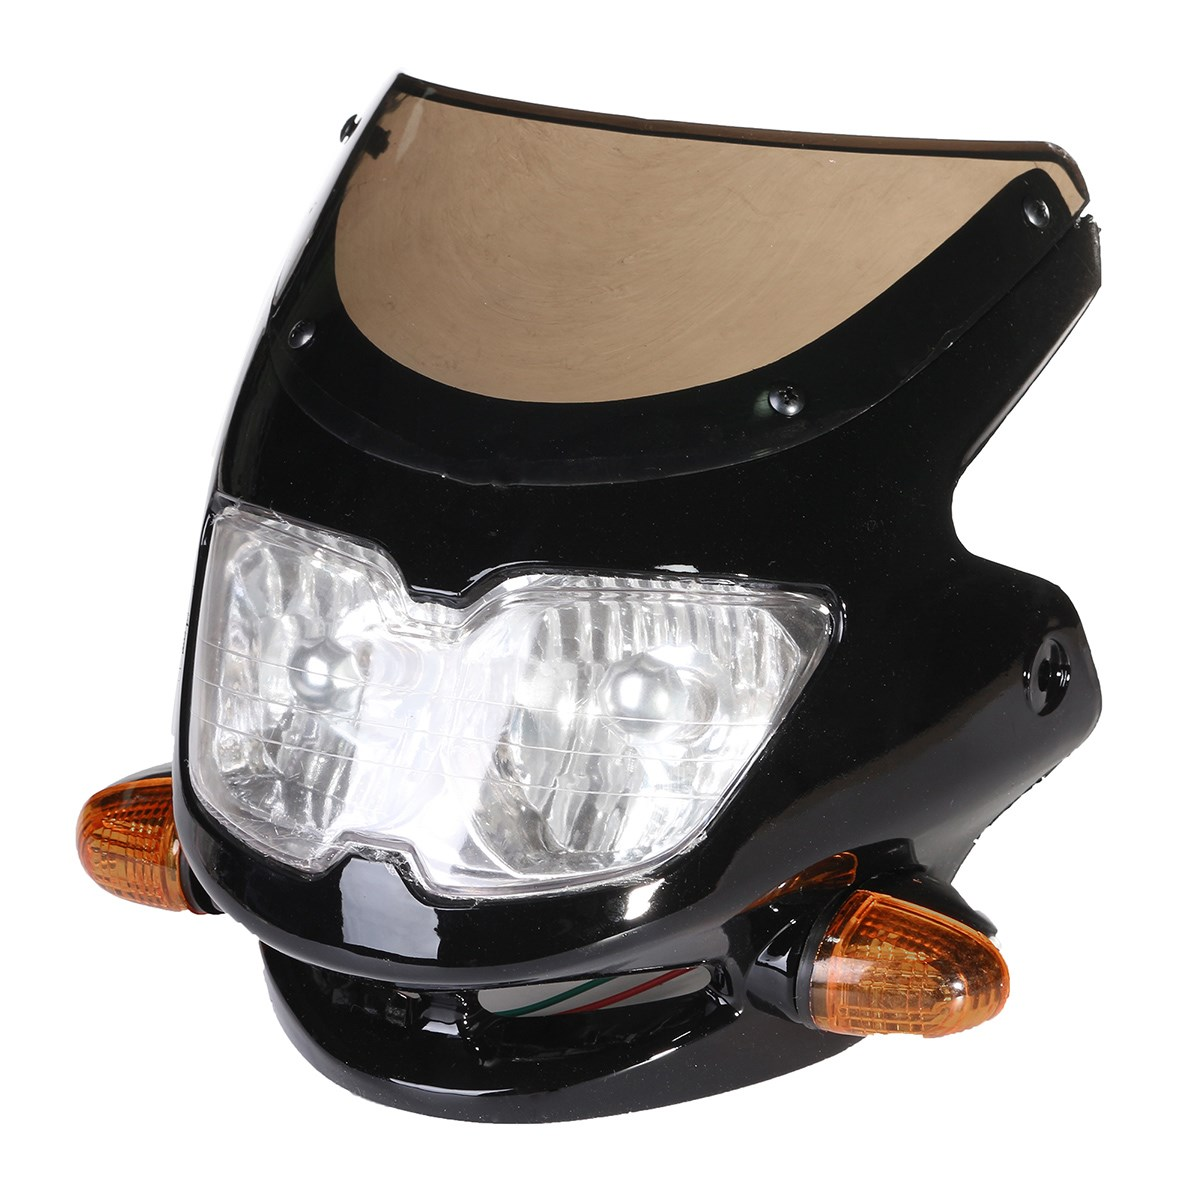 12V 35W Black Plastic Universal Streetfighter Motorcycle Headlight Signal Light Fairing Head Light12V 35W Black Plastic Universal Streetfighter Motorcycle Headlight Signal Light Fairing Head Light